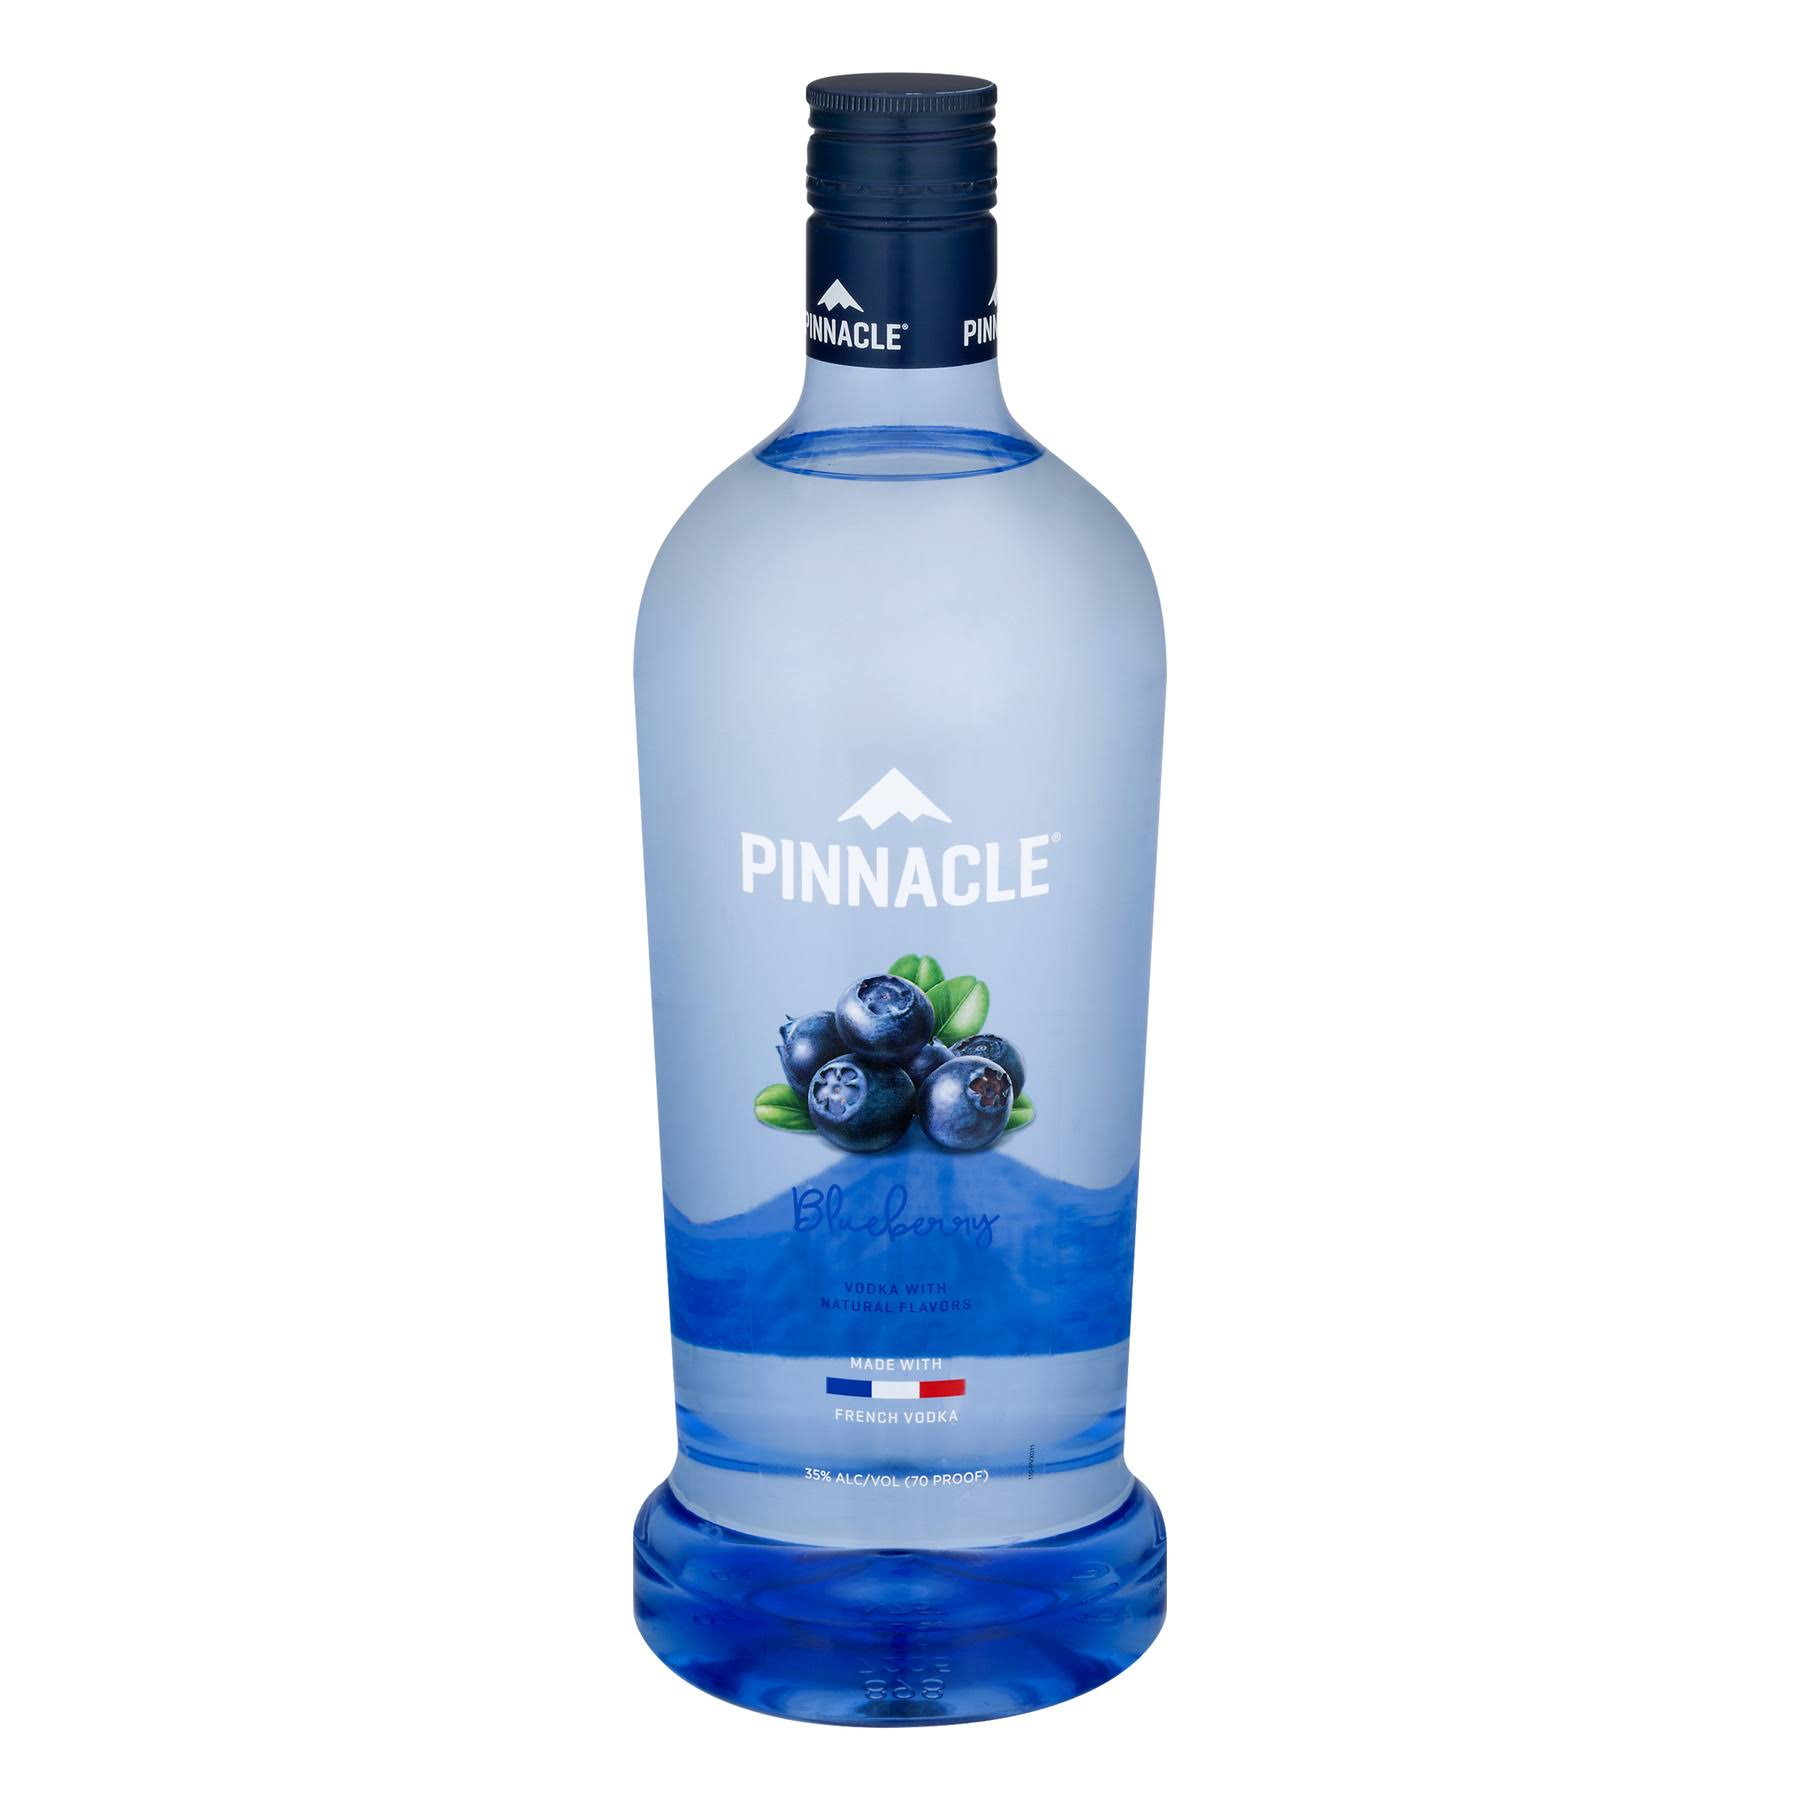 Pinnacle Blueberry Flavored Vodka, 1.75 L